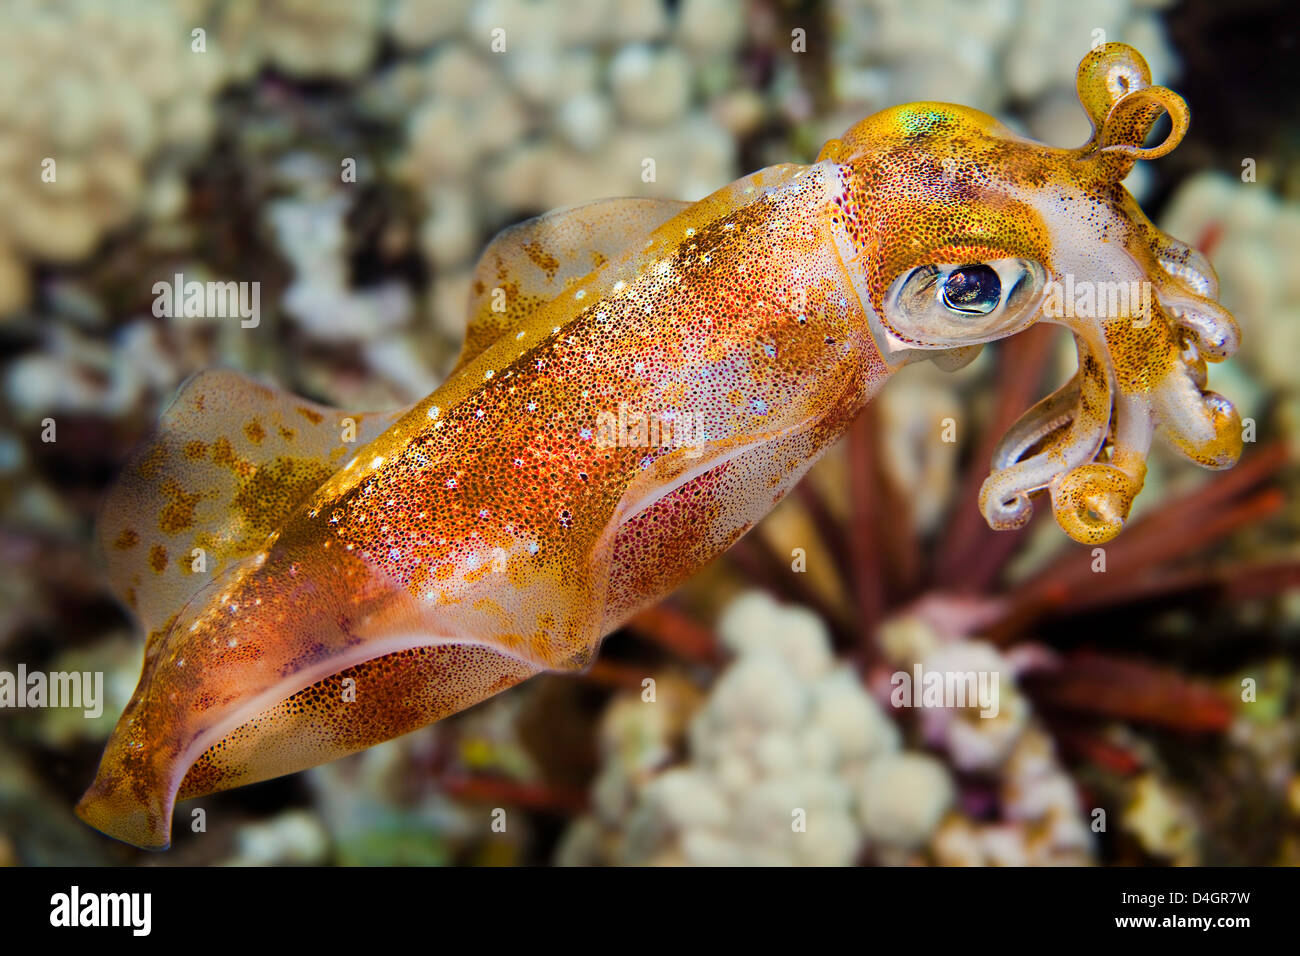 The male oval squid, Sepioteuthis lessoniana, can reach 14 inches in length. Hawaii. - Stock Image